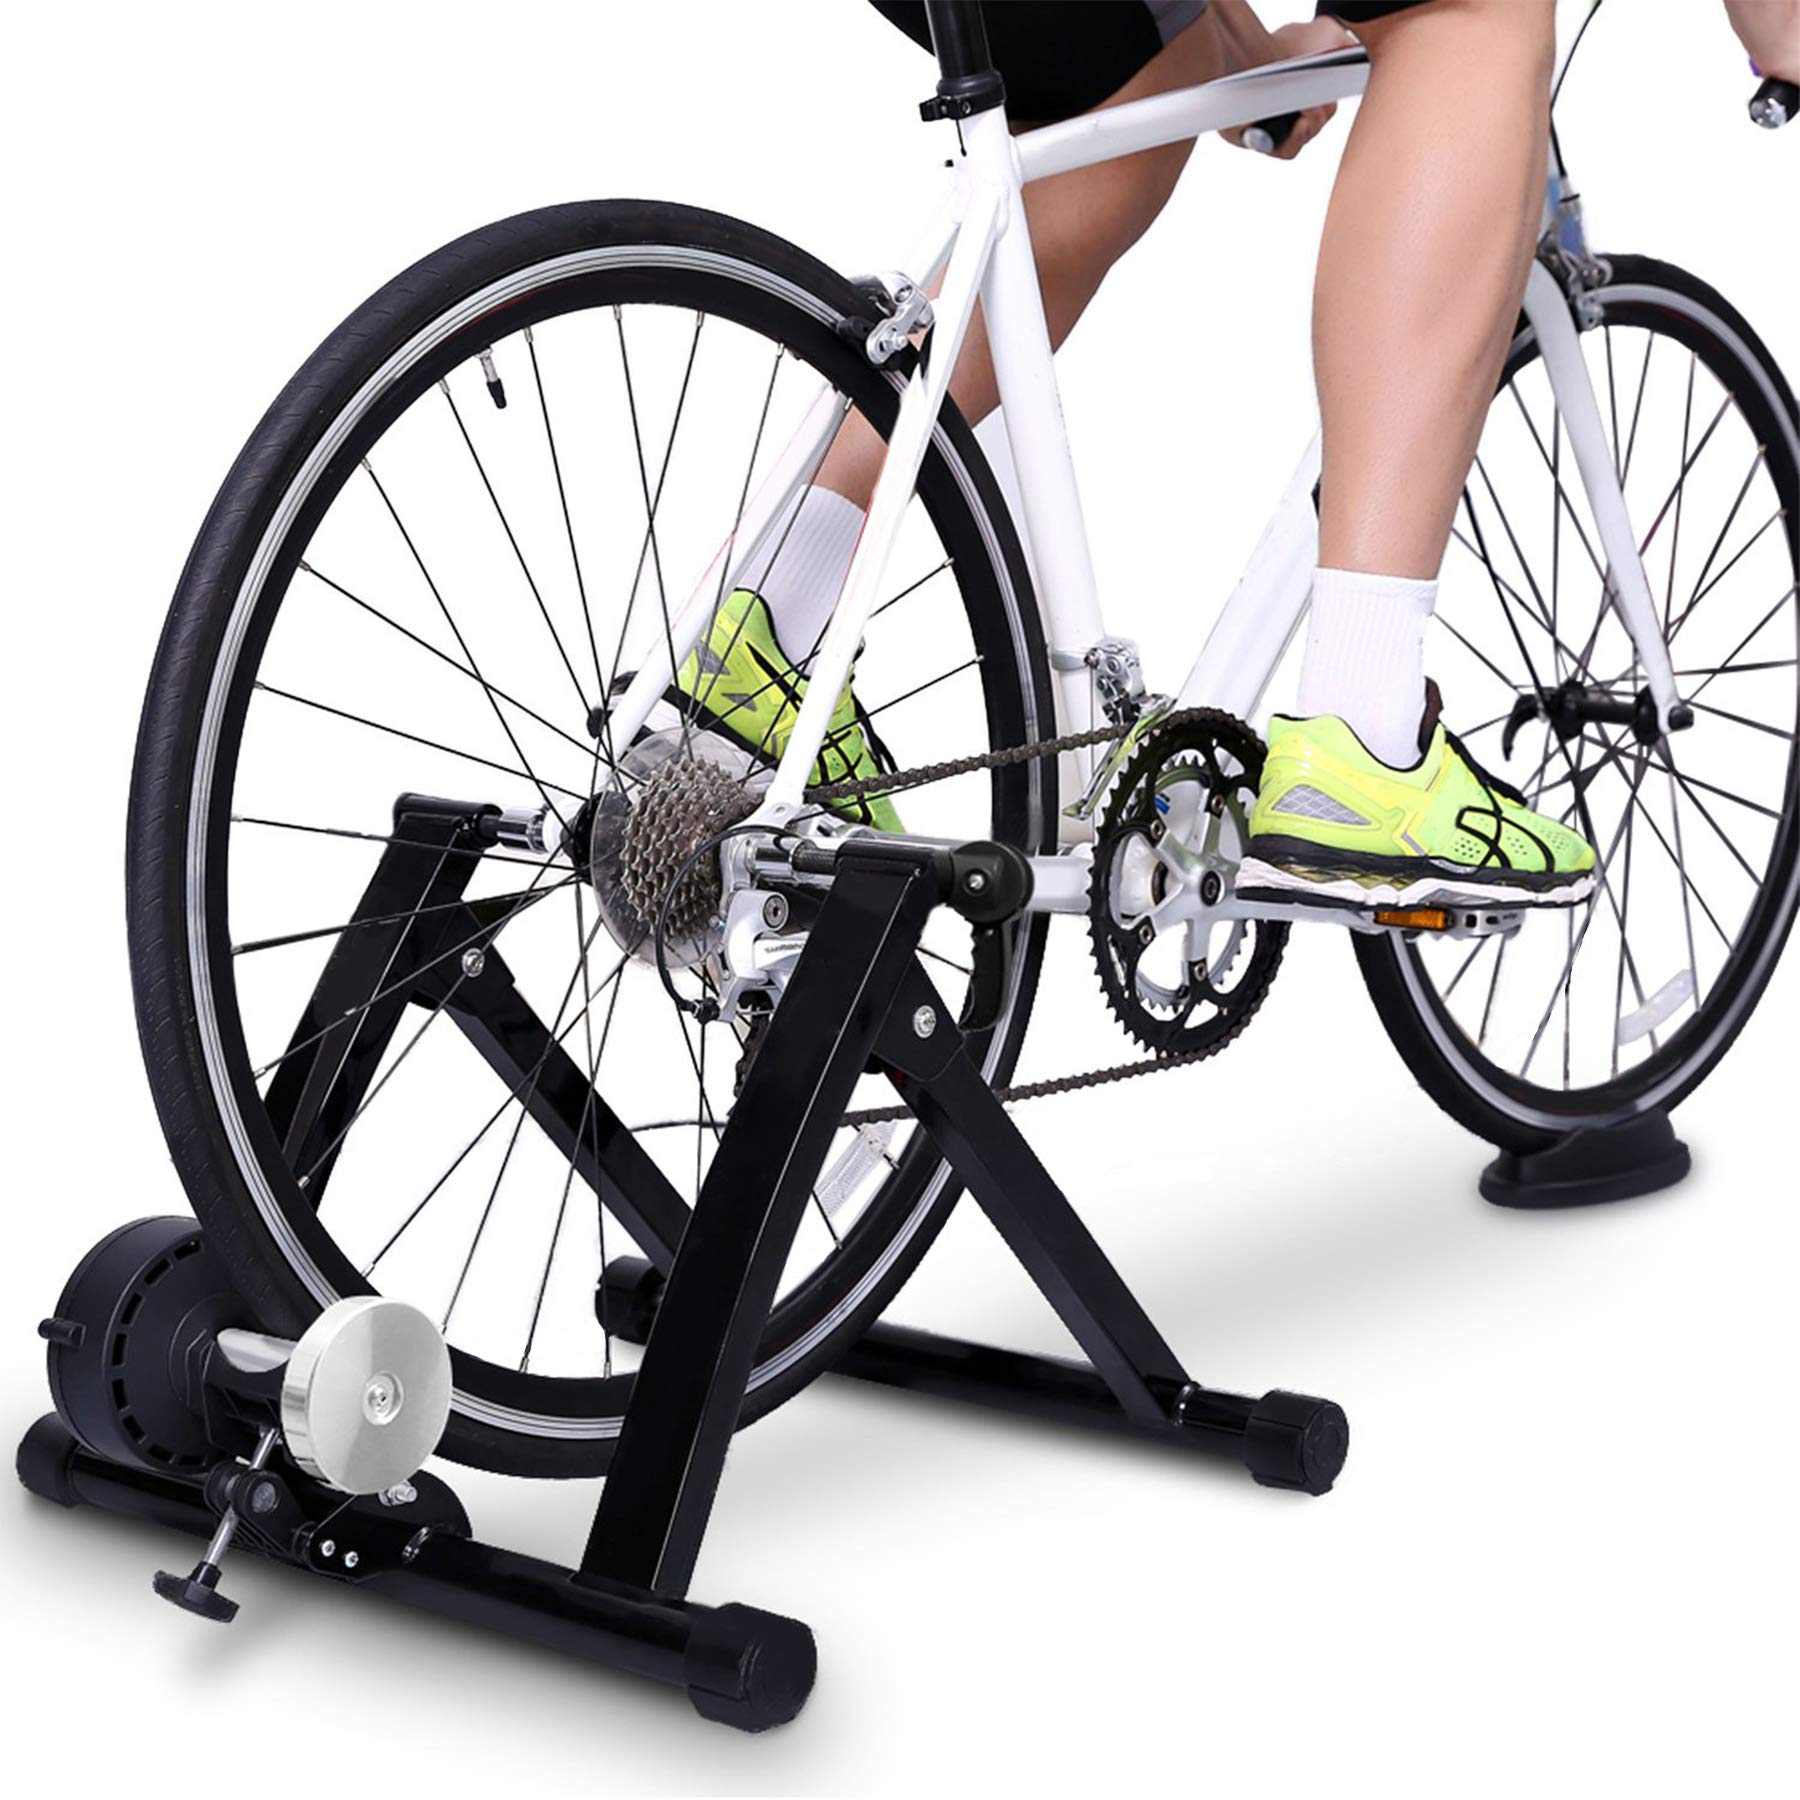 Cibee Sports Bike Trainer Stand, Magnetic/Wire Controlled Bicycle Stationary Stand for Indoor Exercise, Quiet Noise Reduction Quick Release and Front Wheel Block, 24''-28'' (Black - Regular Resistence)